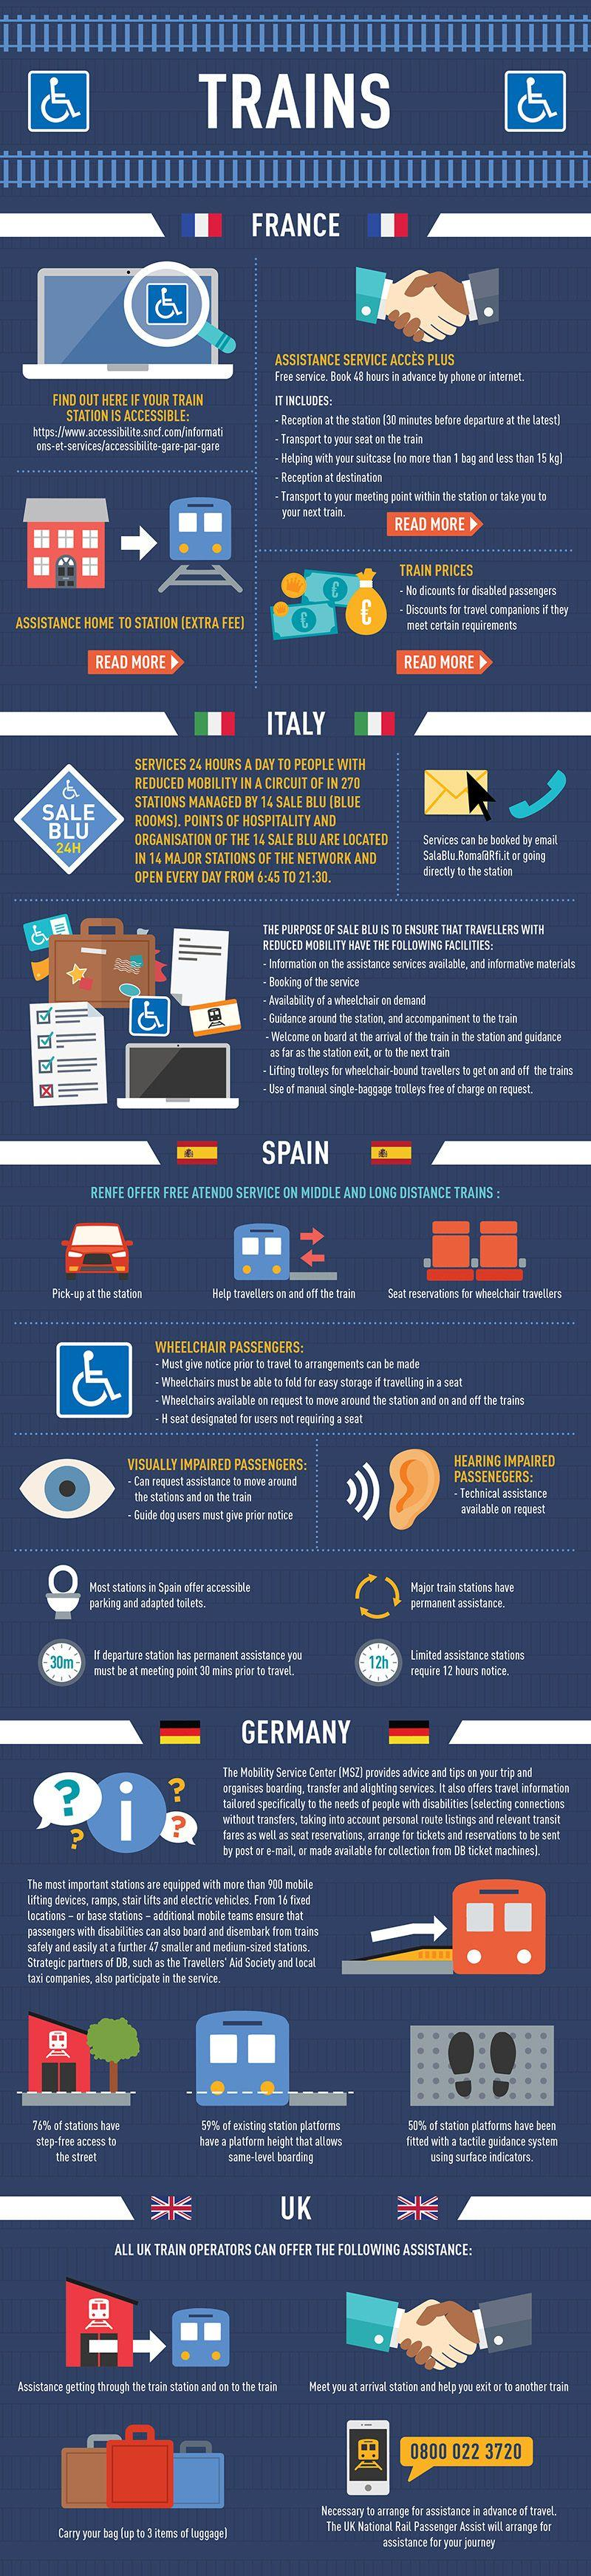 A Guide to Accessible Travel Infographic - Trains